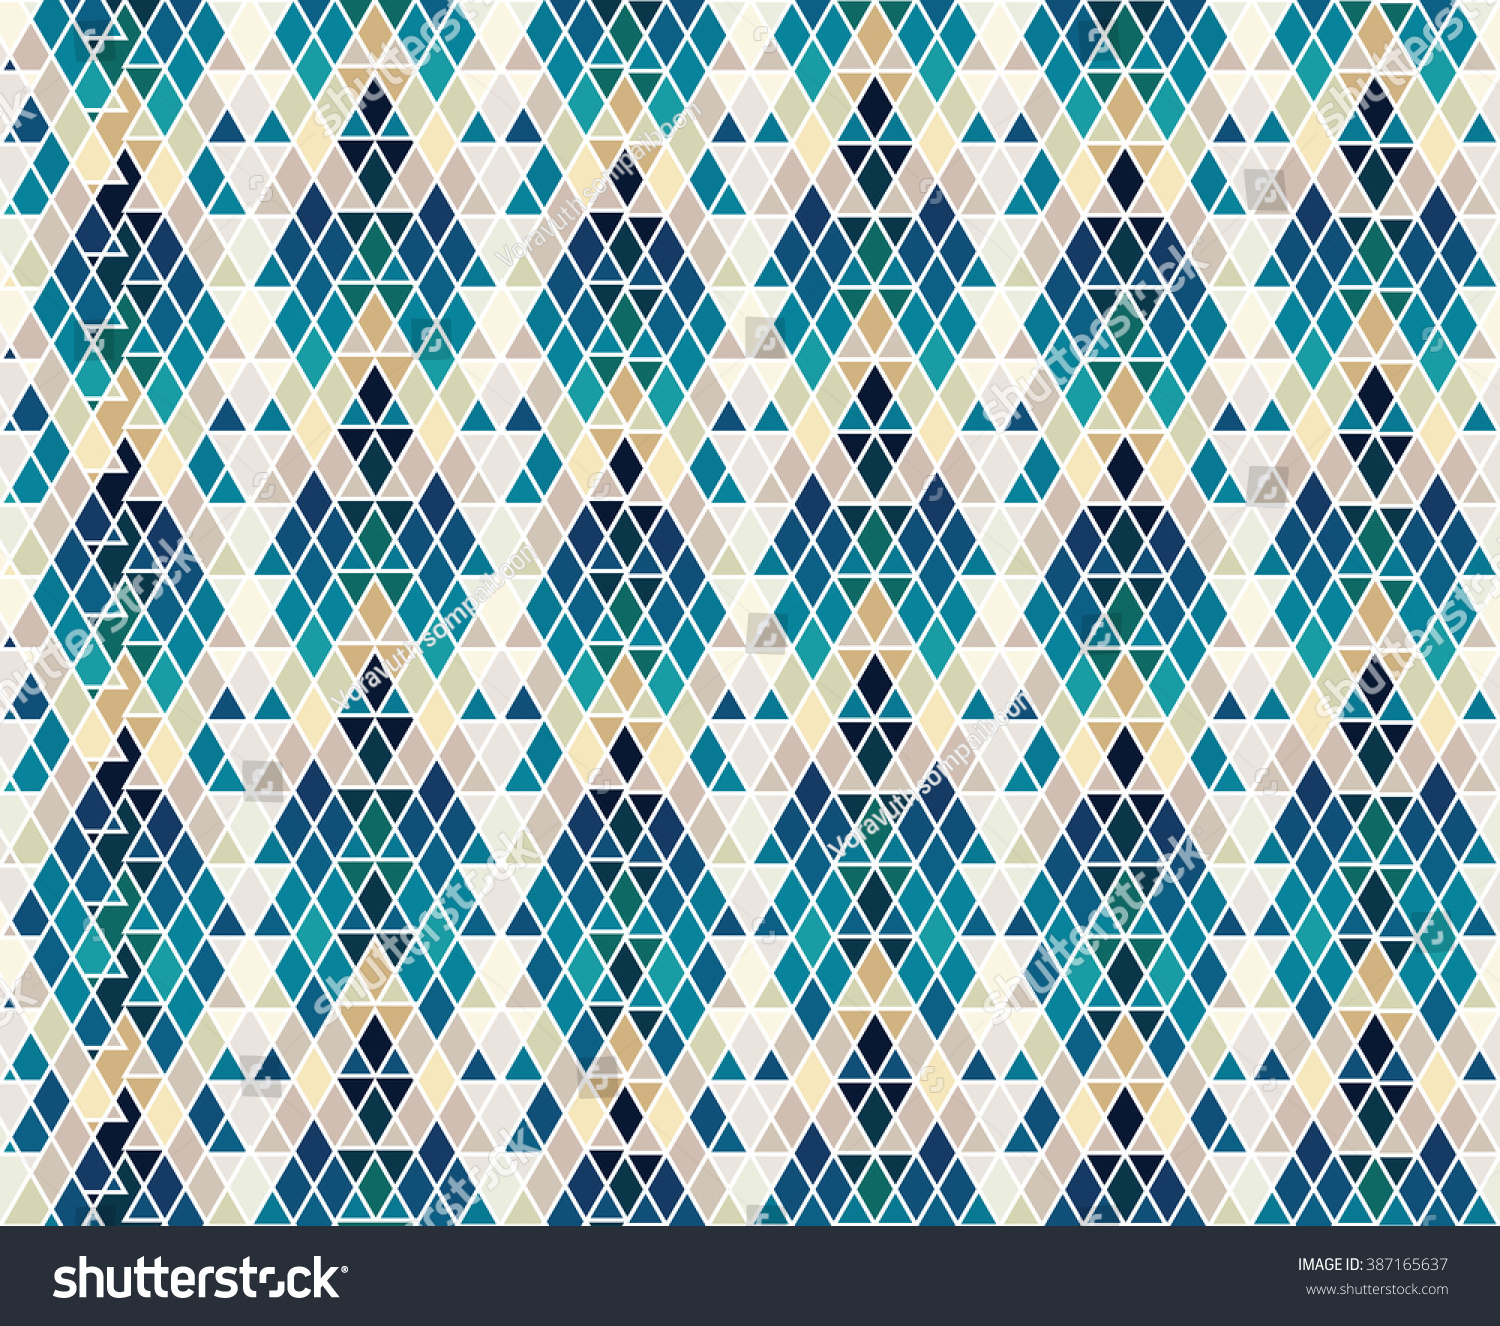 Modern geometric pattern Vector Tribal elements ethnic collection aztec stile tribal art can be used for wallpaper cover fills web page background surface textures Geometric simple print